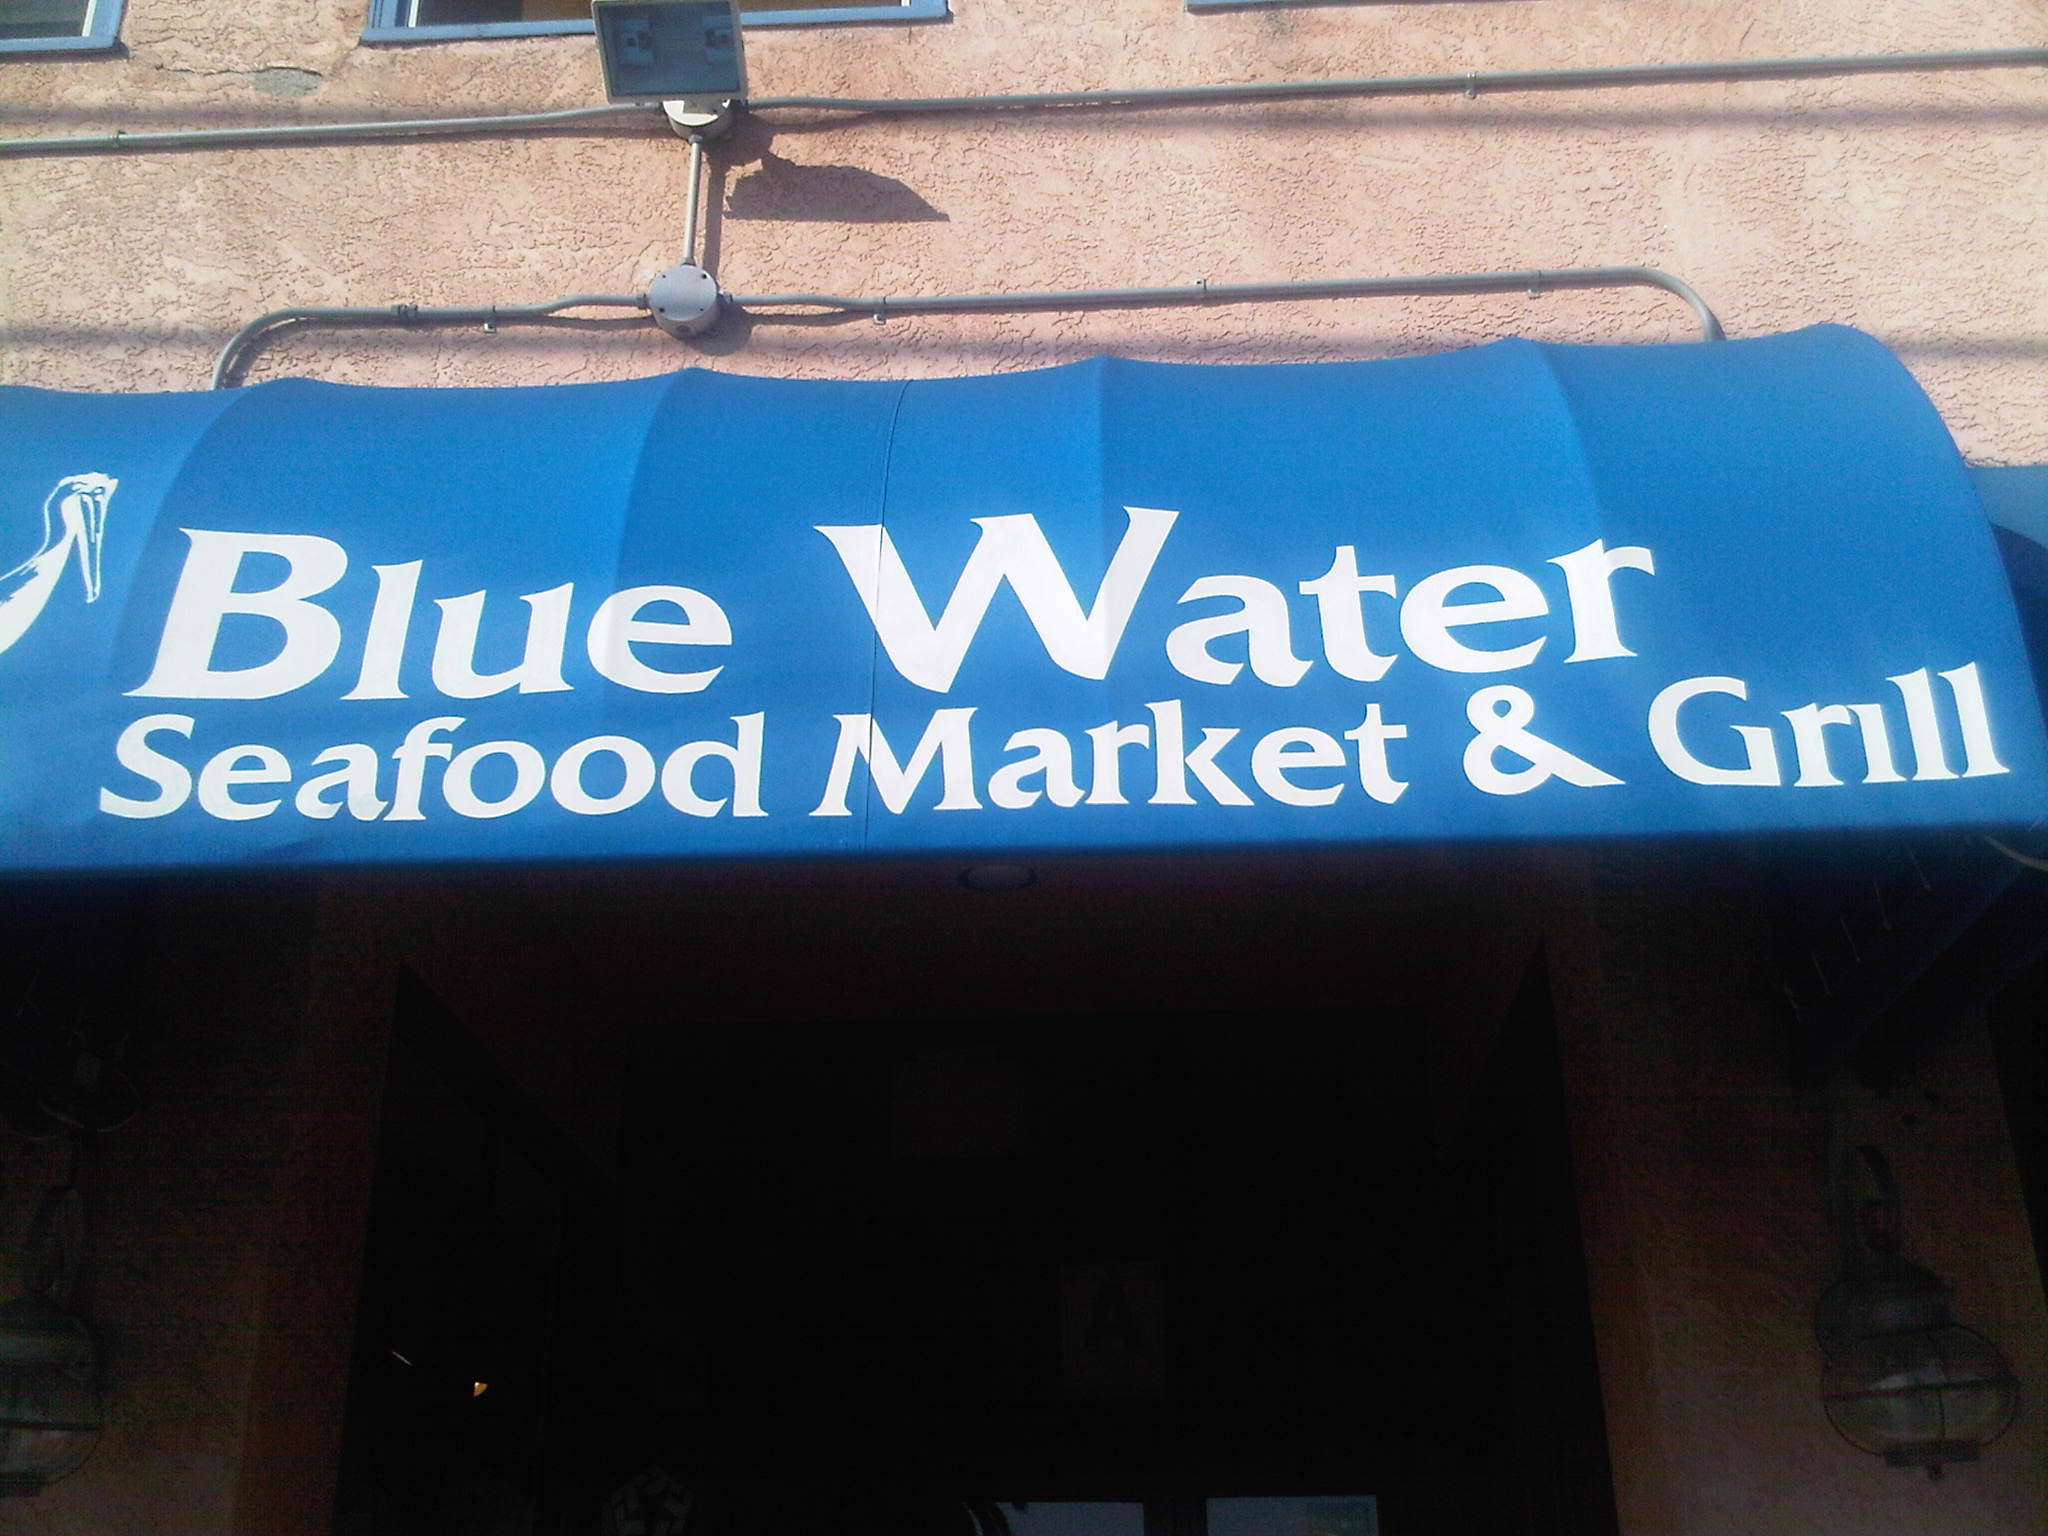 Ddd san diego blue water seafood market and grill fare for Blue water fish market